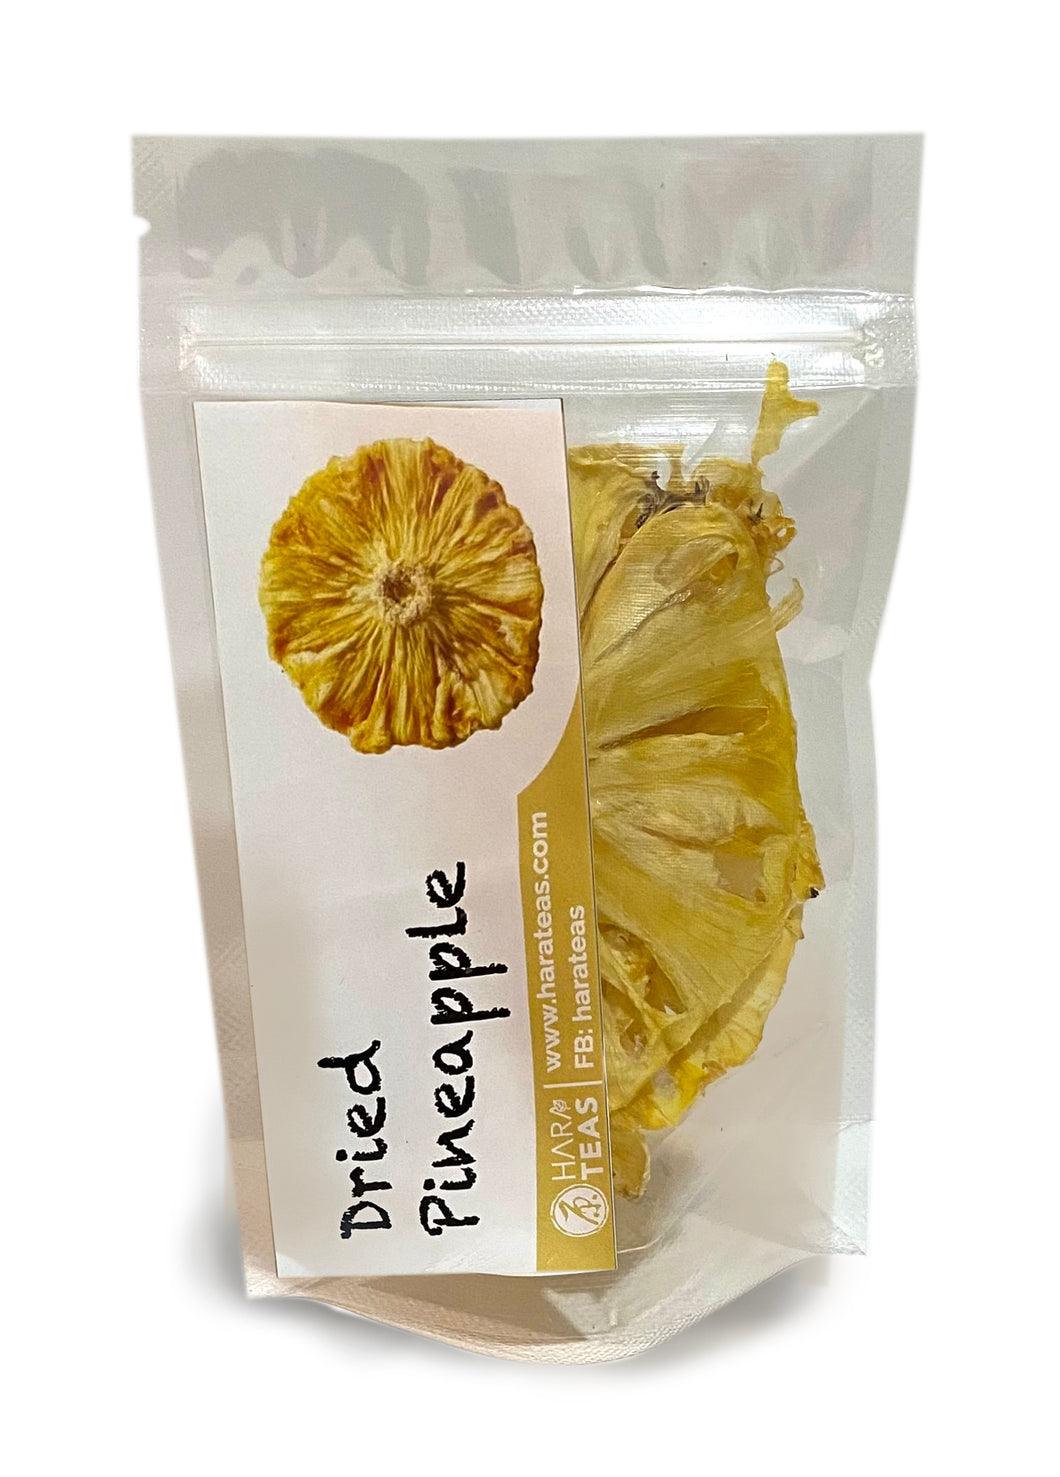 Dehydrated Pineapple Slices 低温处理黄梨片